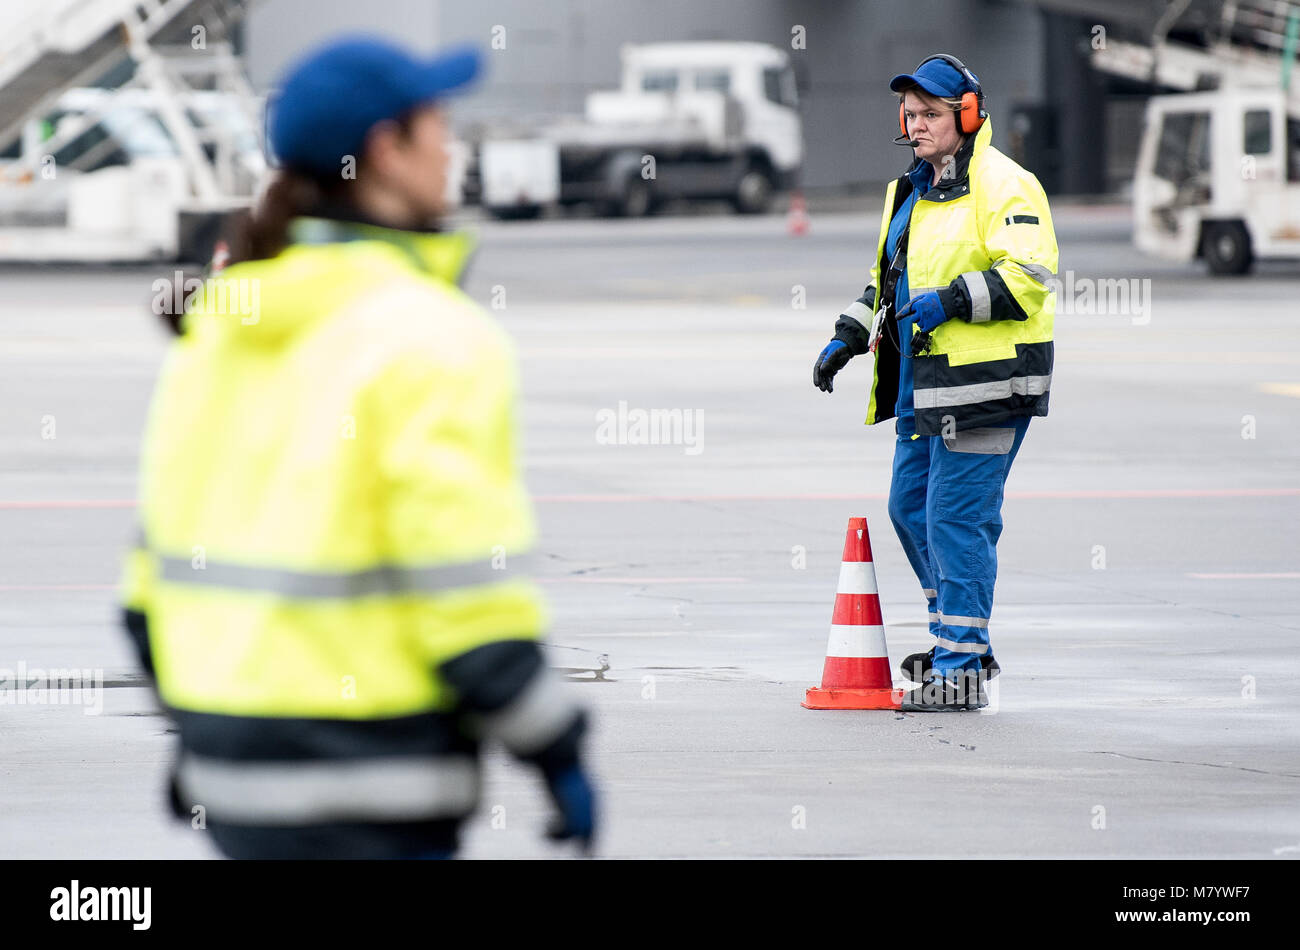 08 March 2018, Germany, Frankfurt: Sevim Sejdijaj, in charge of ground handling operations, places pylons on the Stock Photo